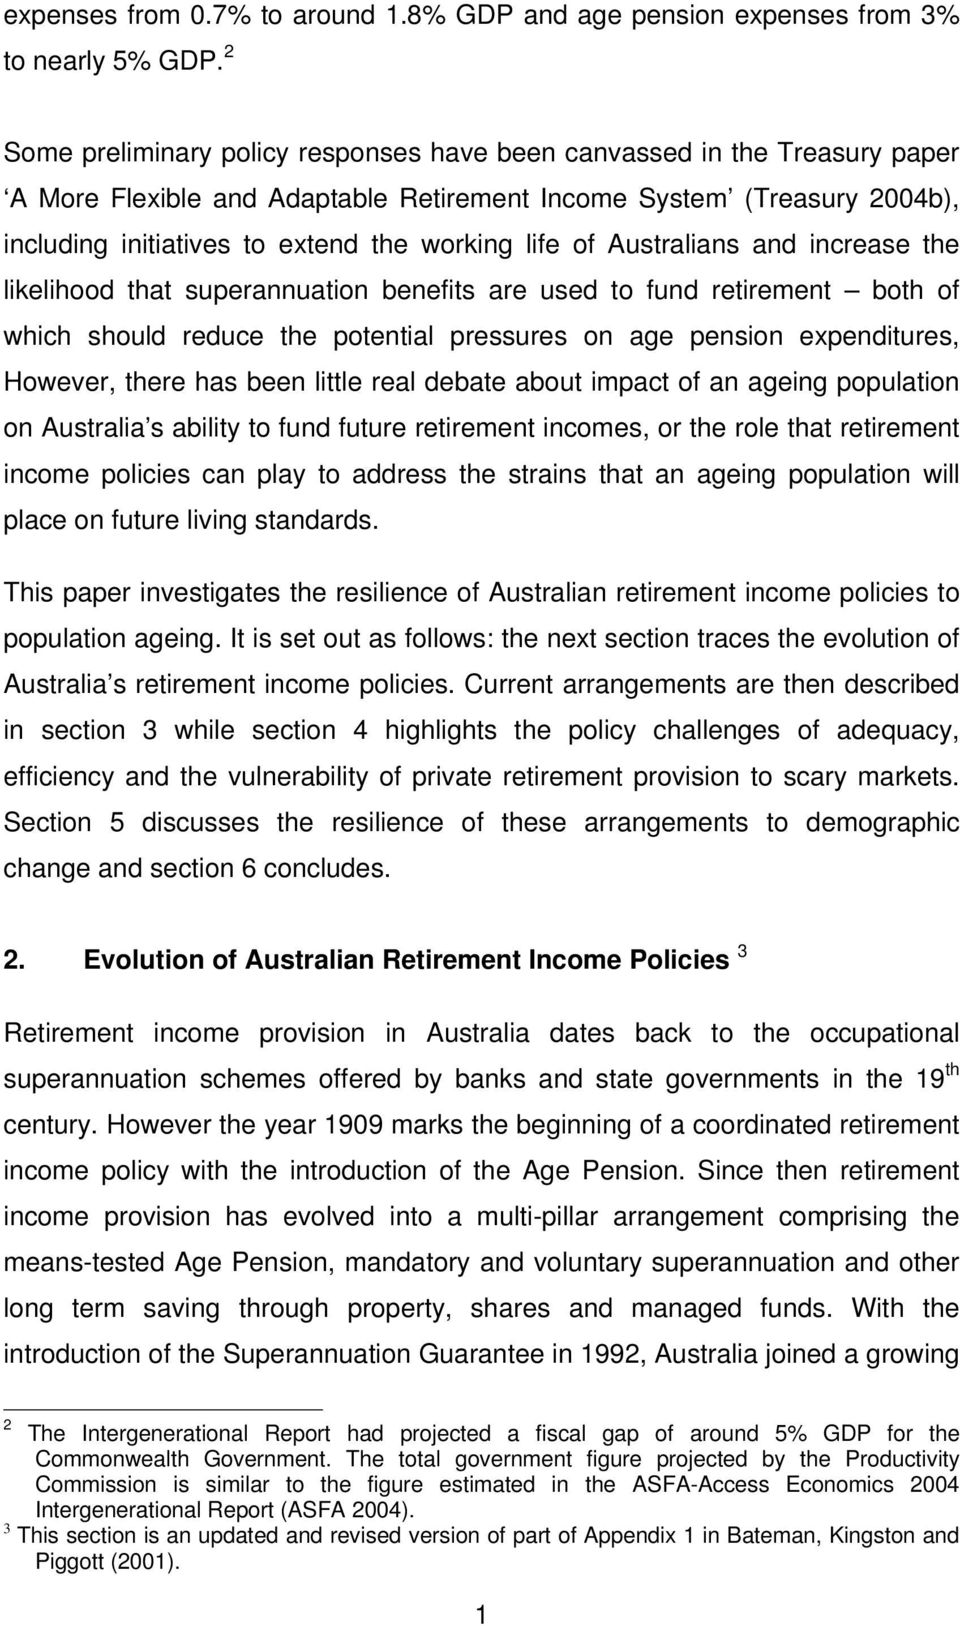 of Australians and increase the likelihood that superannuation benefits are used to fund retirement both of which should reduce the potential pressures on age pension expenditures, However, there has